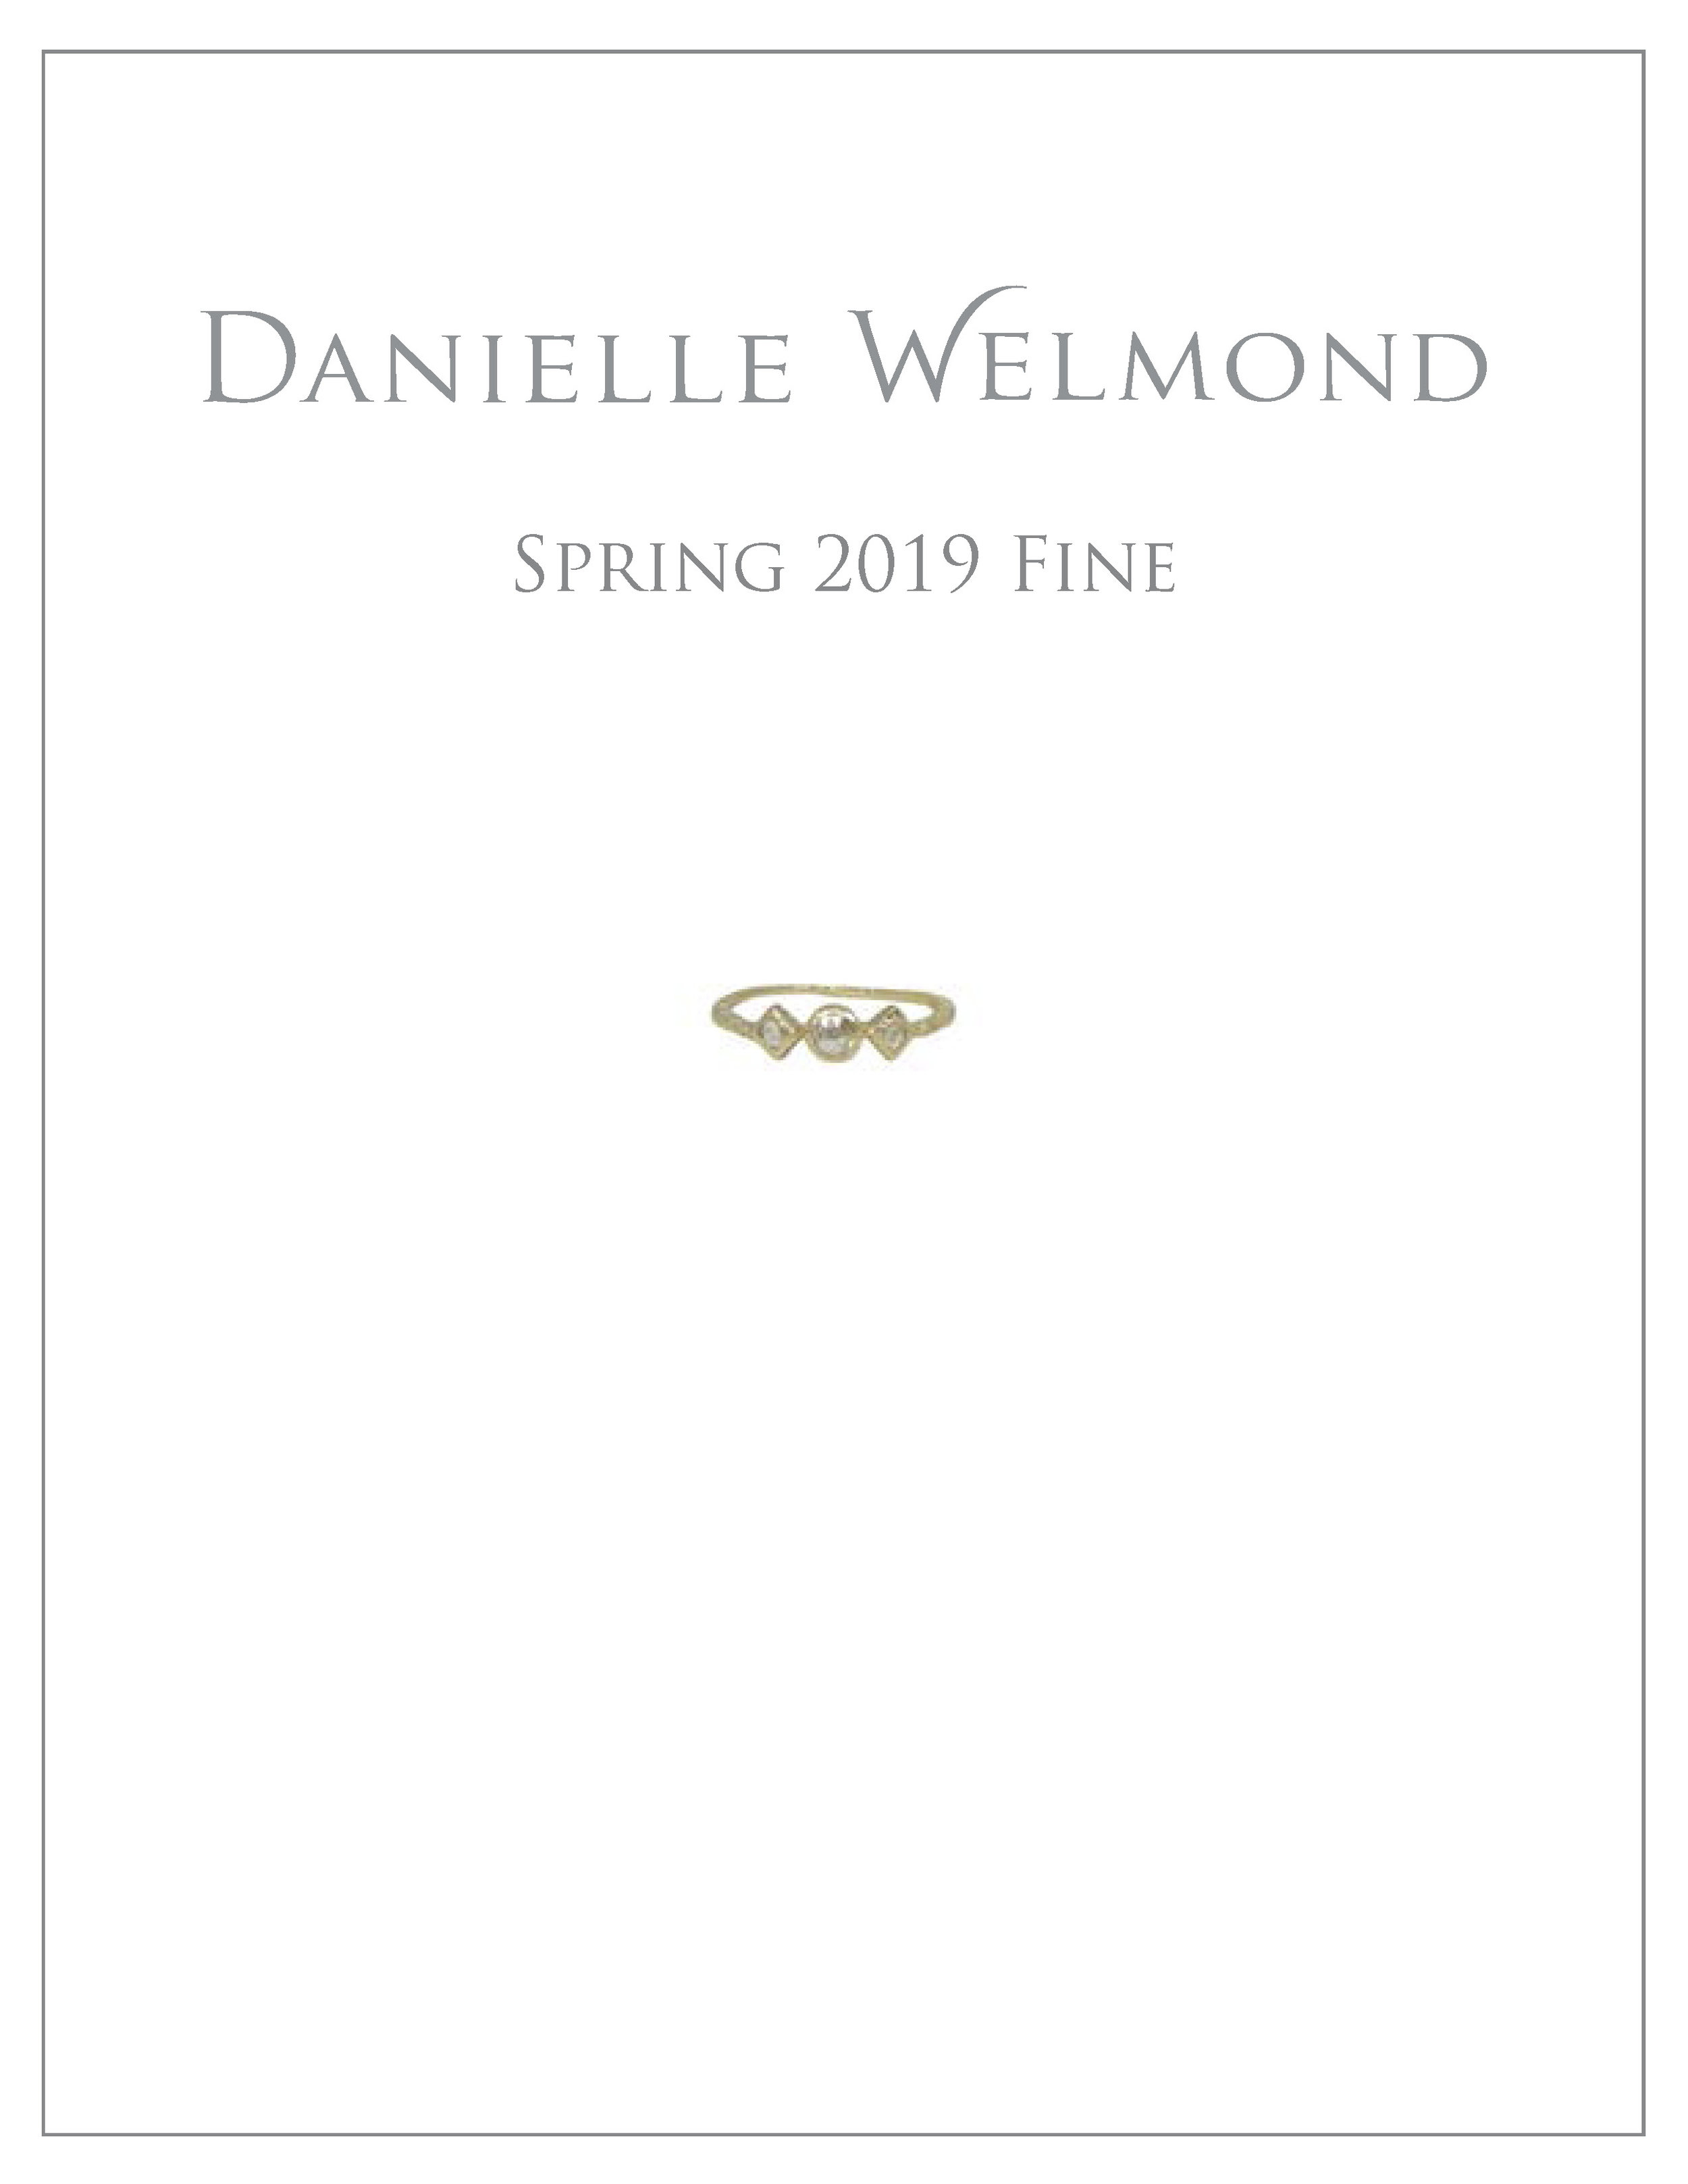 Pages from Danielle Welmond Fine Spring 2019 Collection_Page_1.jpg